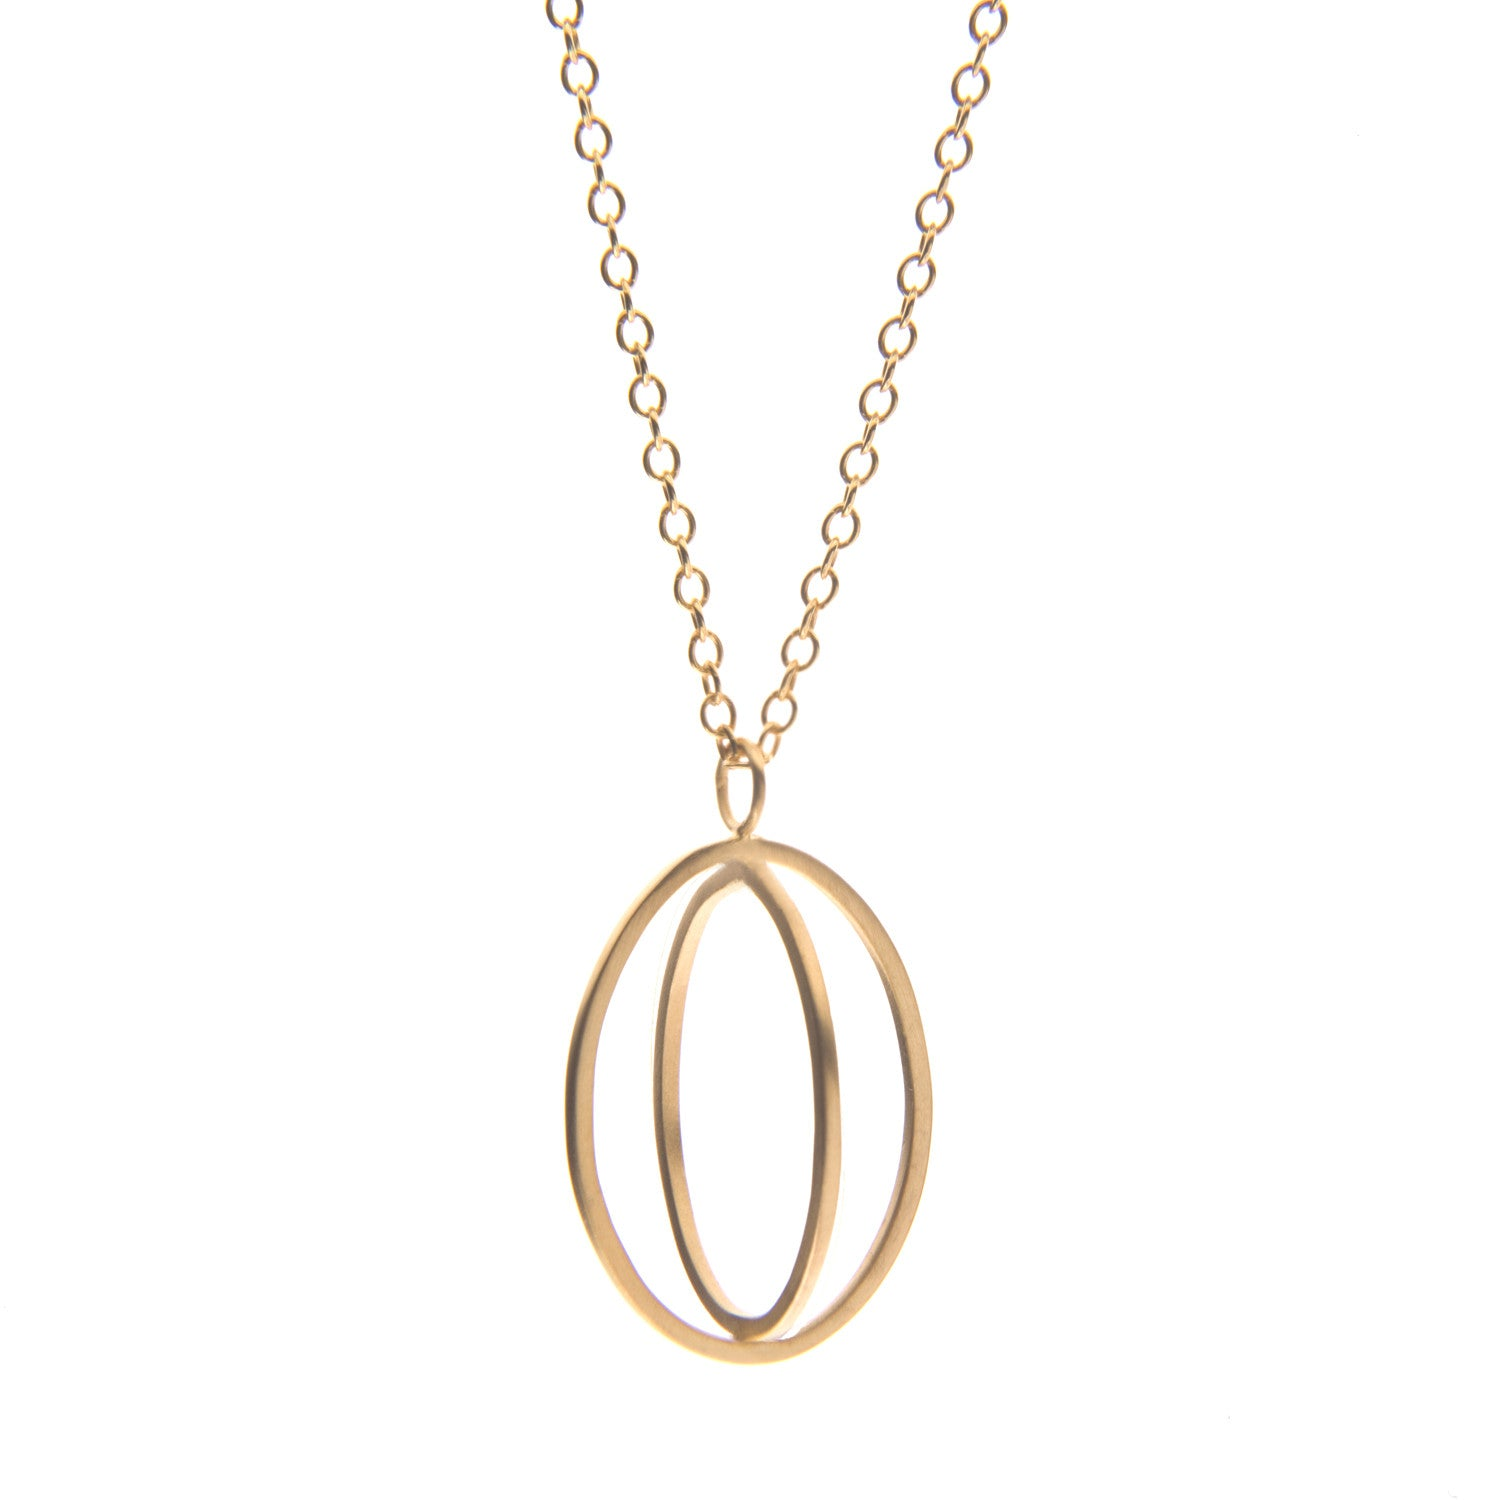 Large ellipse pendant gold plate - Nancy rose jewellery - 1